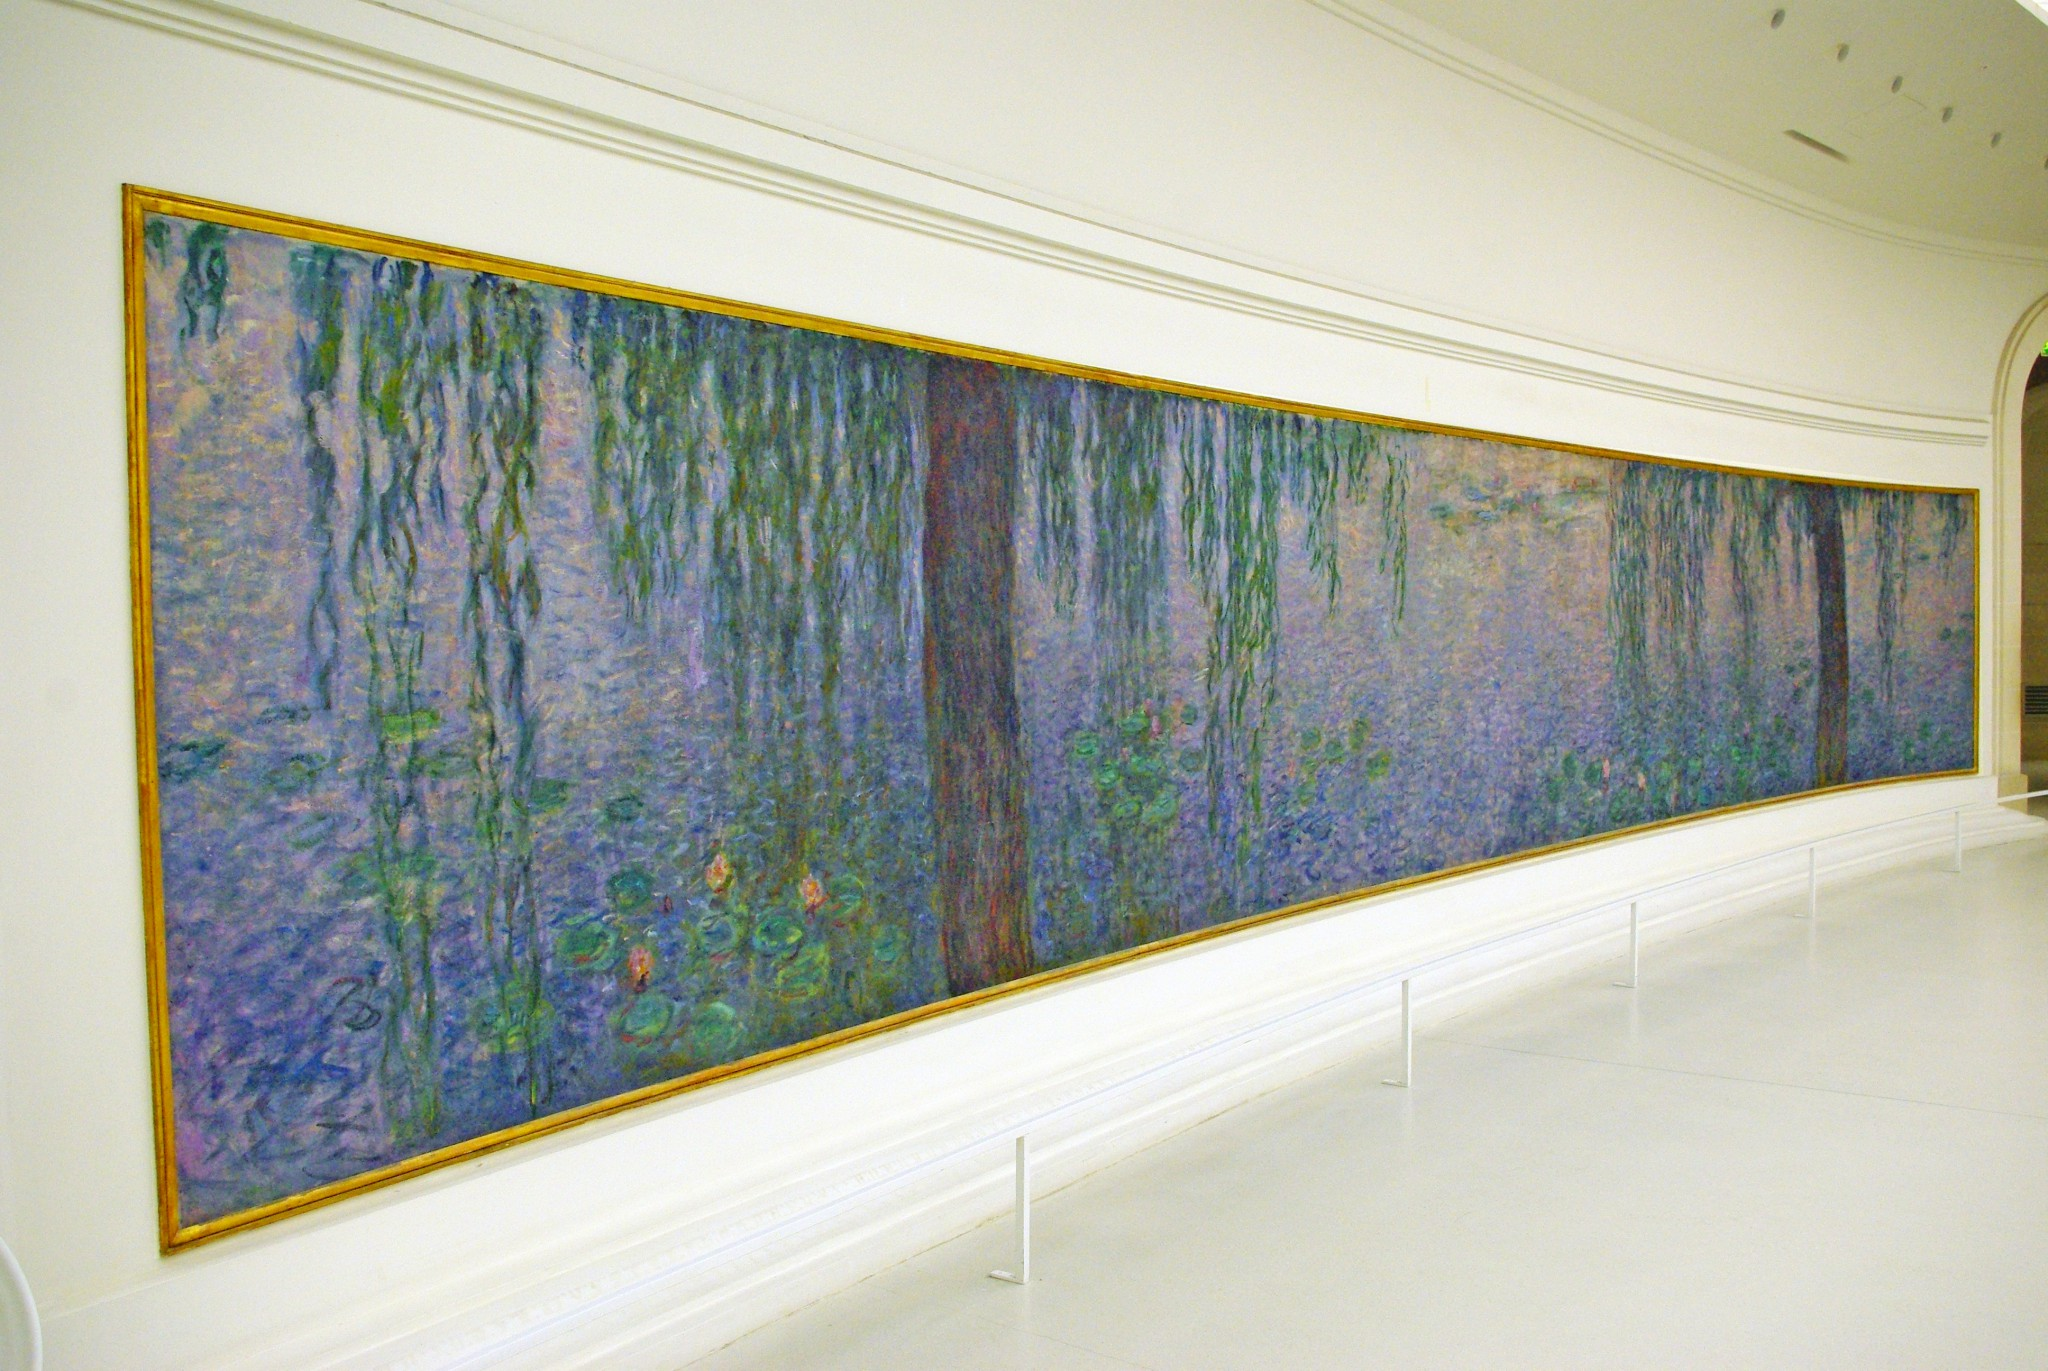 Les Nymphéas by Claude Monet on display at the Orangerie Museum © French Moments